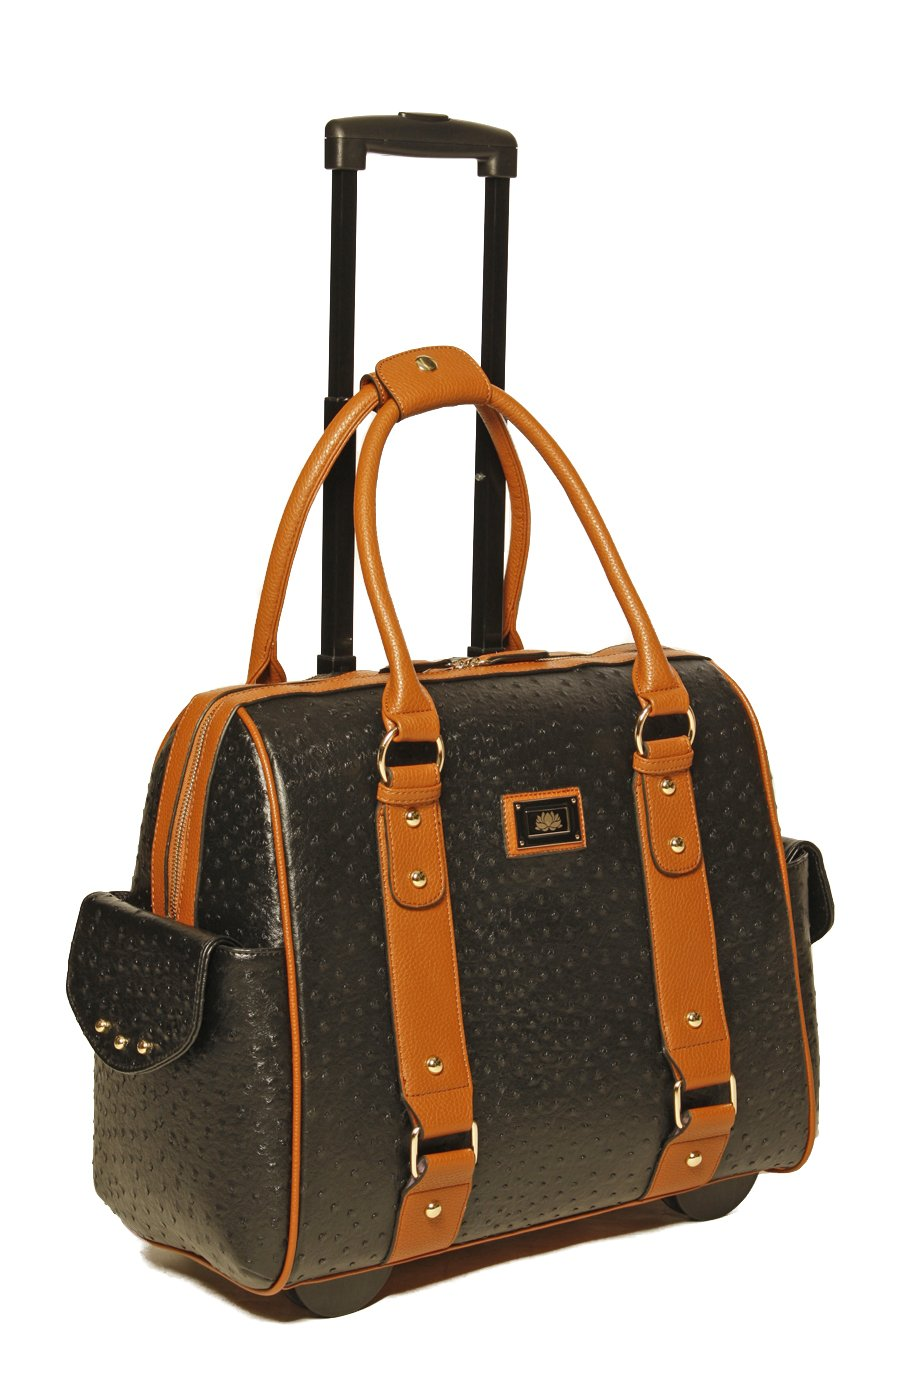 JKM & Company USA Black Ostrich & Brown Faux Leather iPad Tablet or Laptop Tote Carryall or Rolling Briefcase